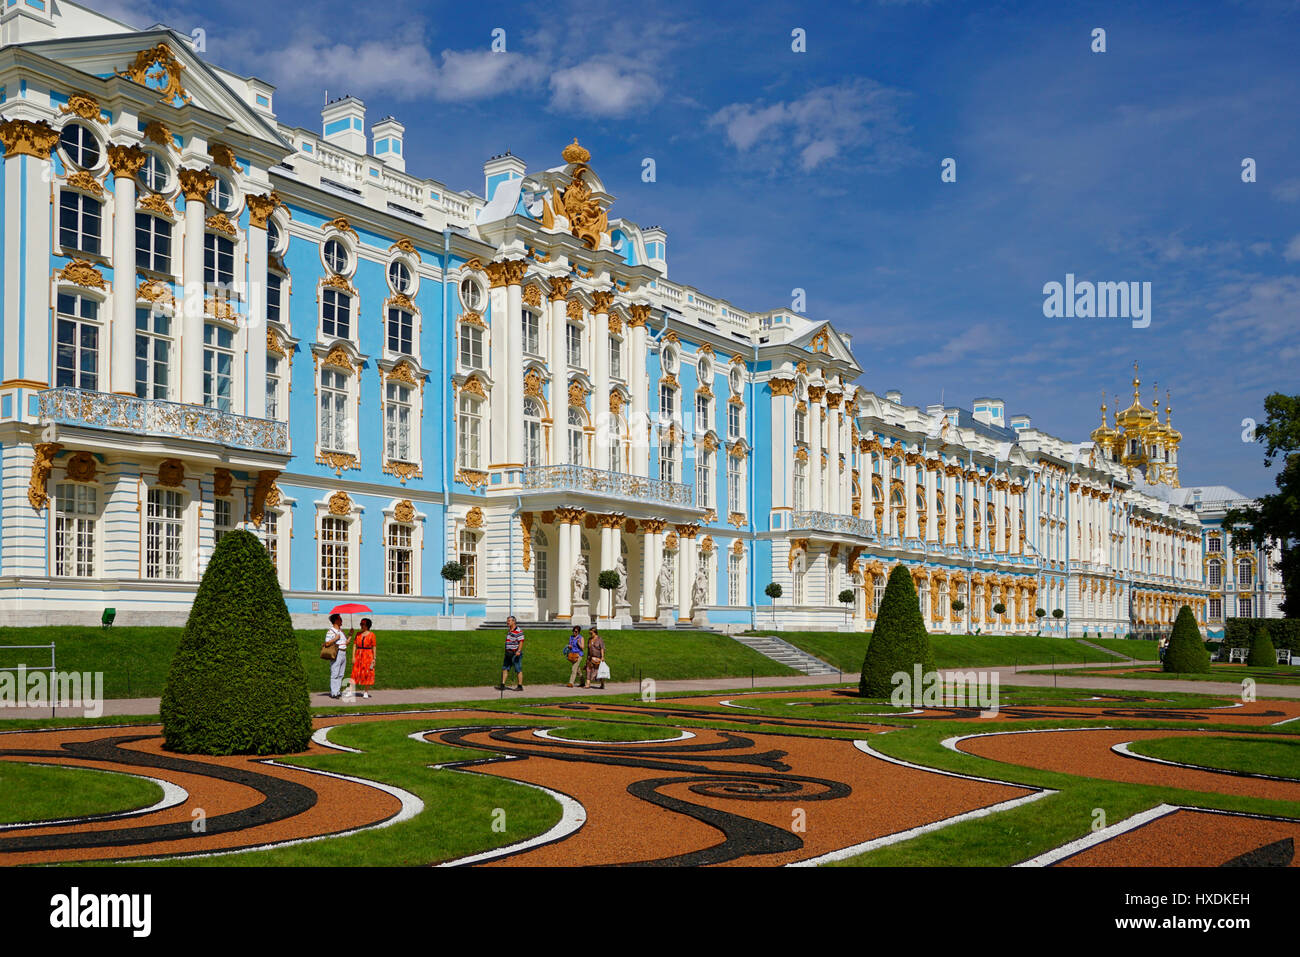 Katharinenpalast in Puschkin in St. Petersburg, Russland. Stockbild